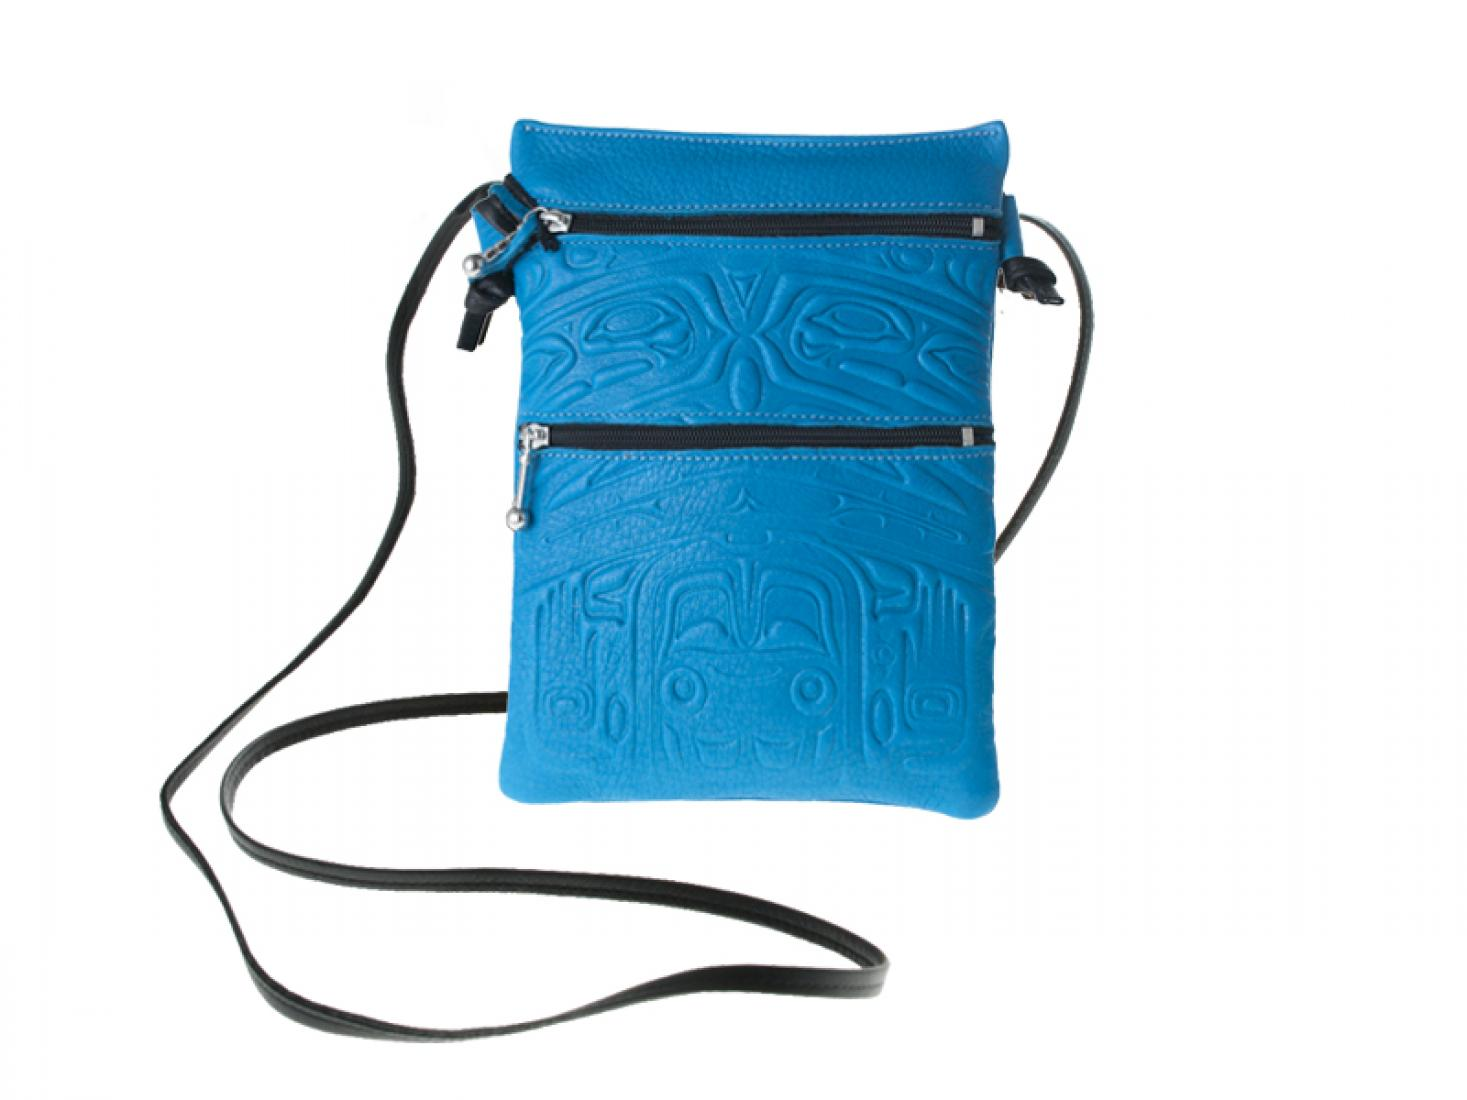 EMBOSSED Passport Pouch - Bear Box Design